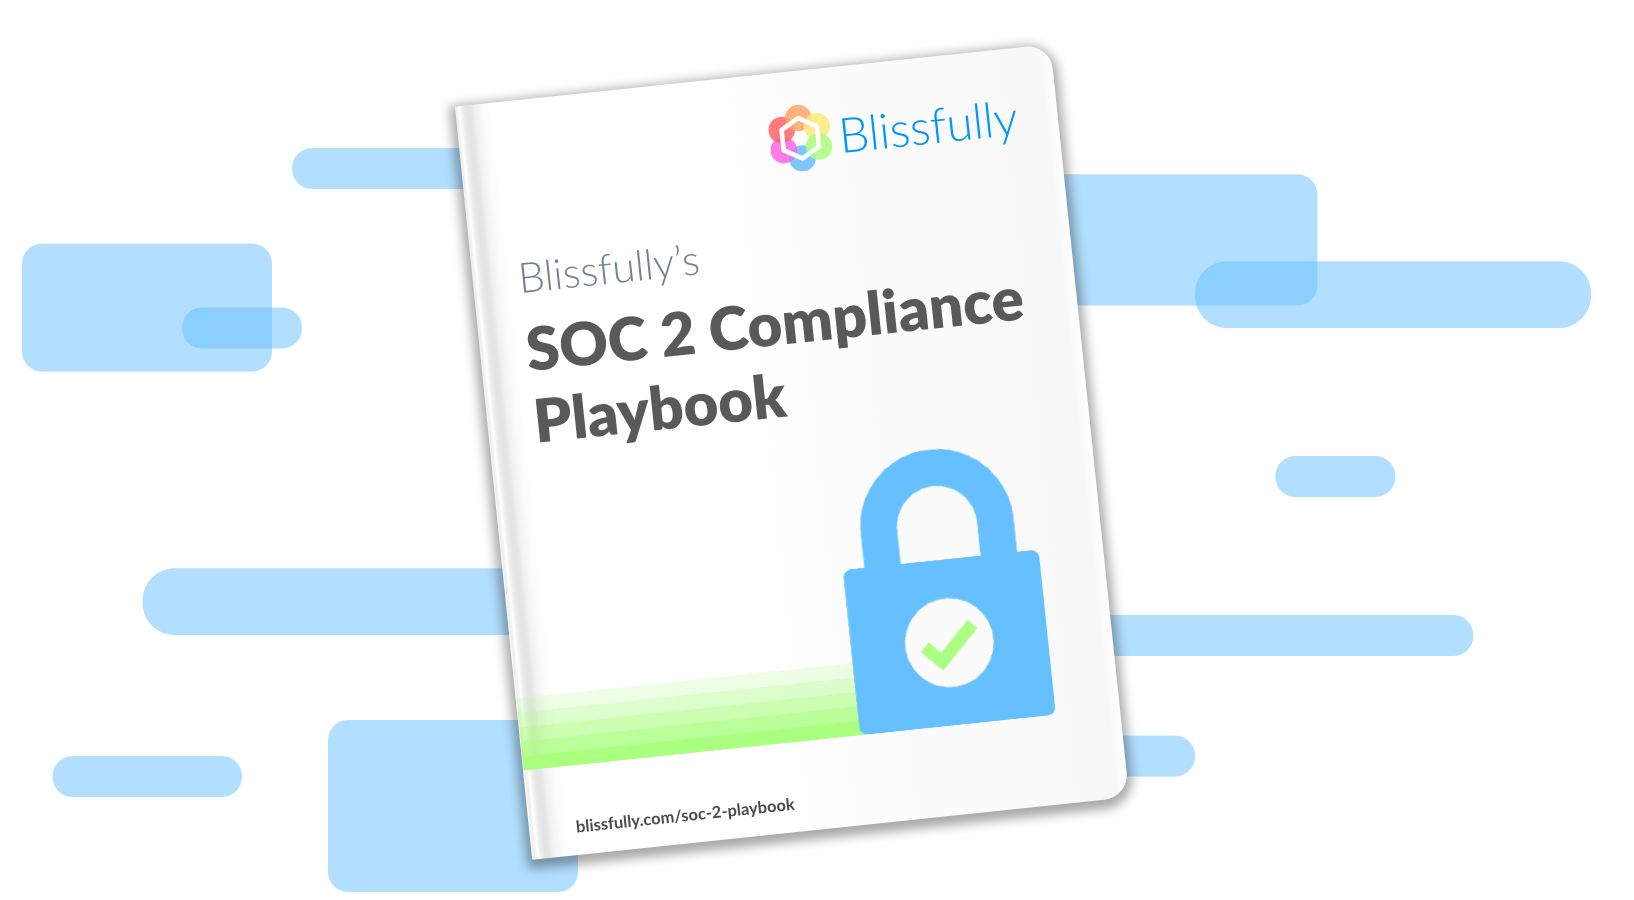 The Complete SOC 2 Compliance Playbook - Blissfully